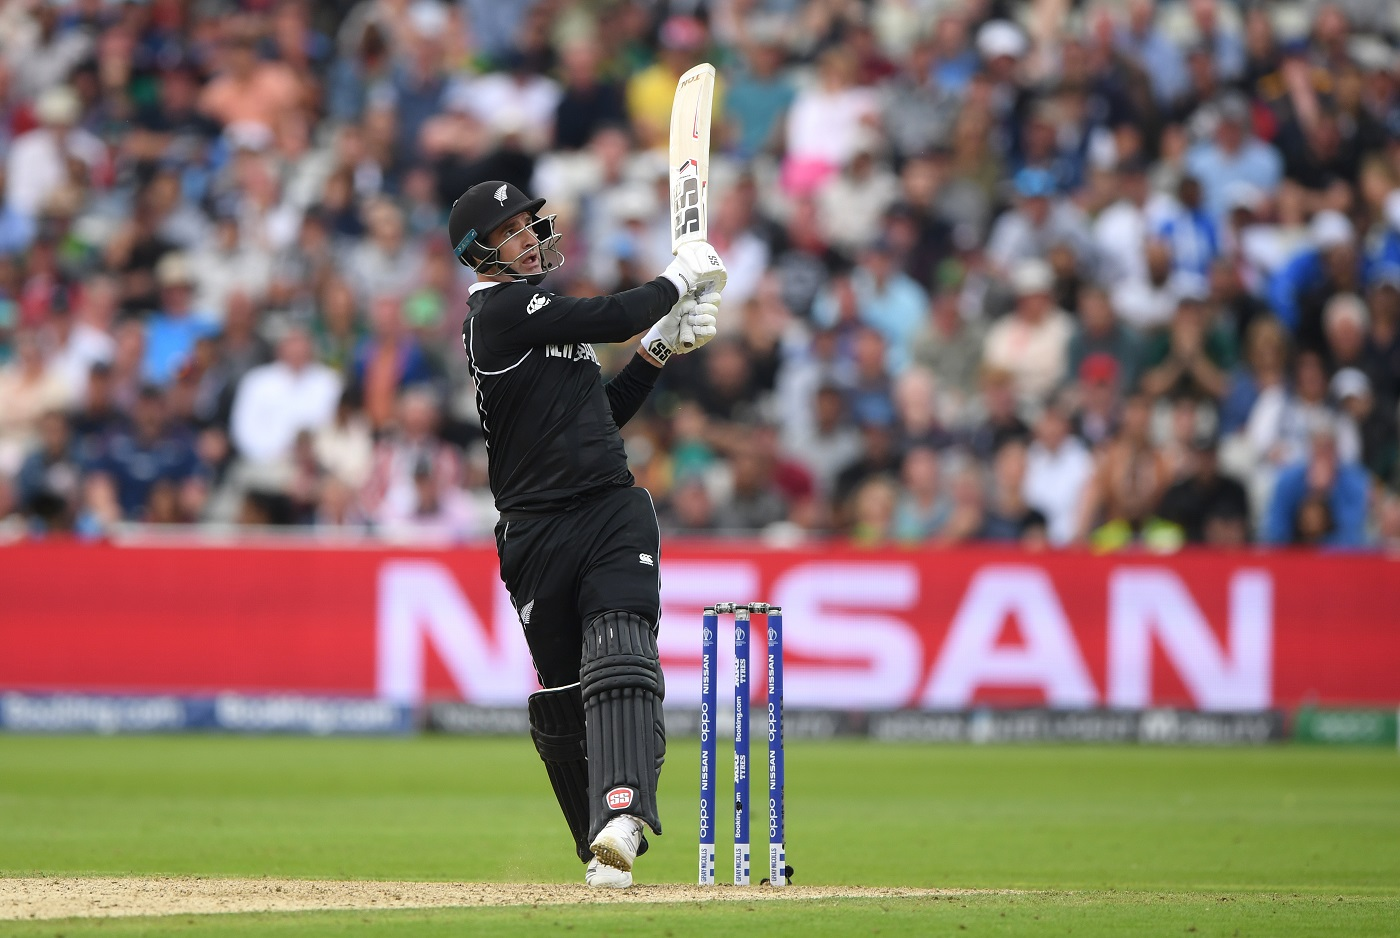 ICC World Cup 2019: Match 33, New Zealand vs Pakistan – New Zealand's Predicted Playing XI